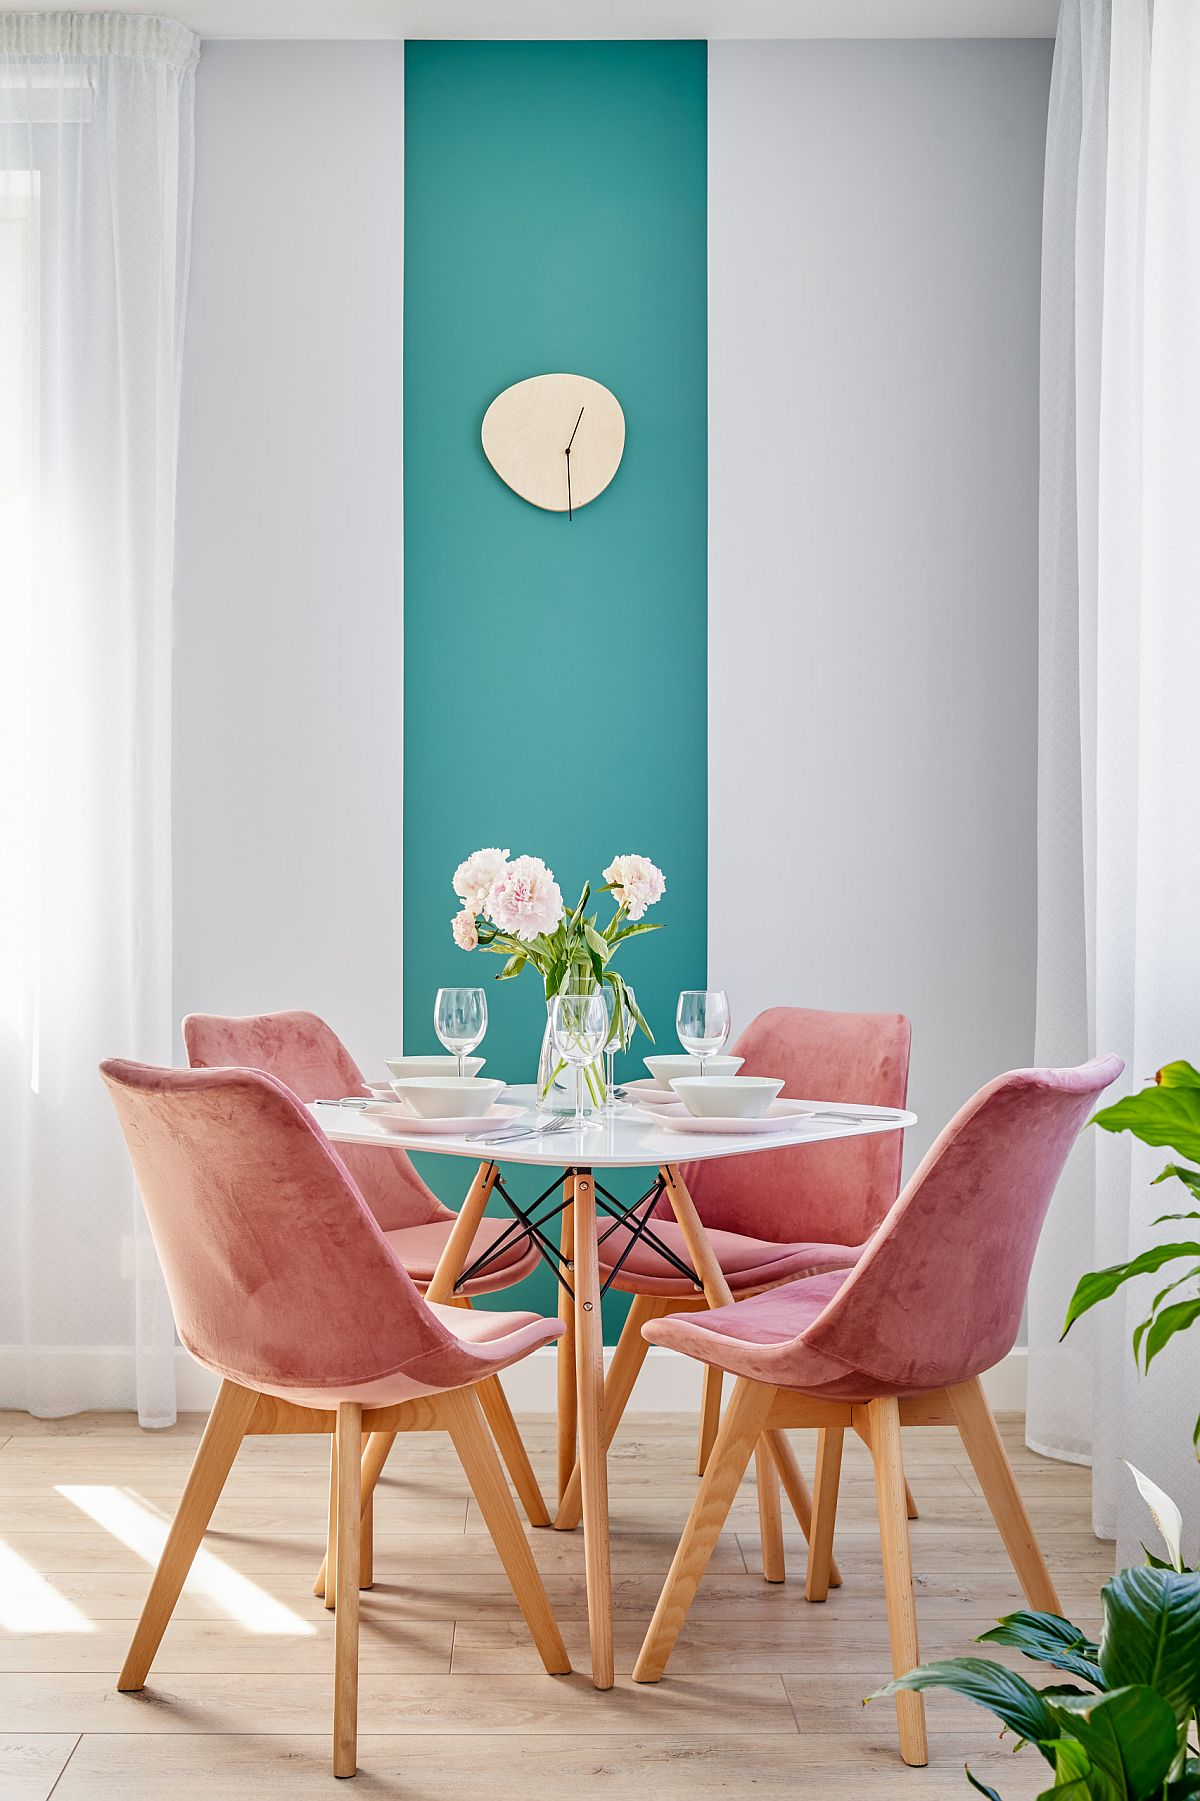 Dashing-dining-area-in-the-corner-with-a-touch-of-teal-in-the-backdrop-and-pink-chairs-that-make-it-special-79290